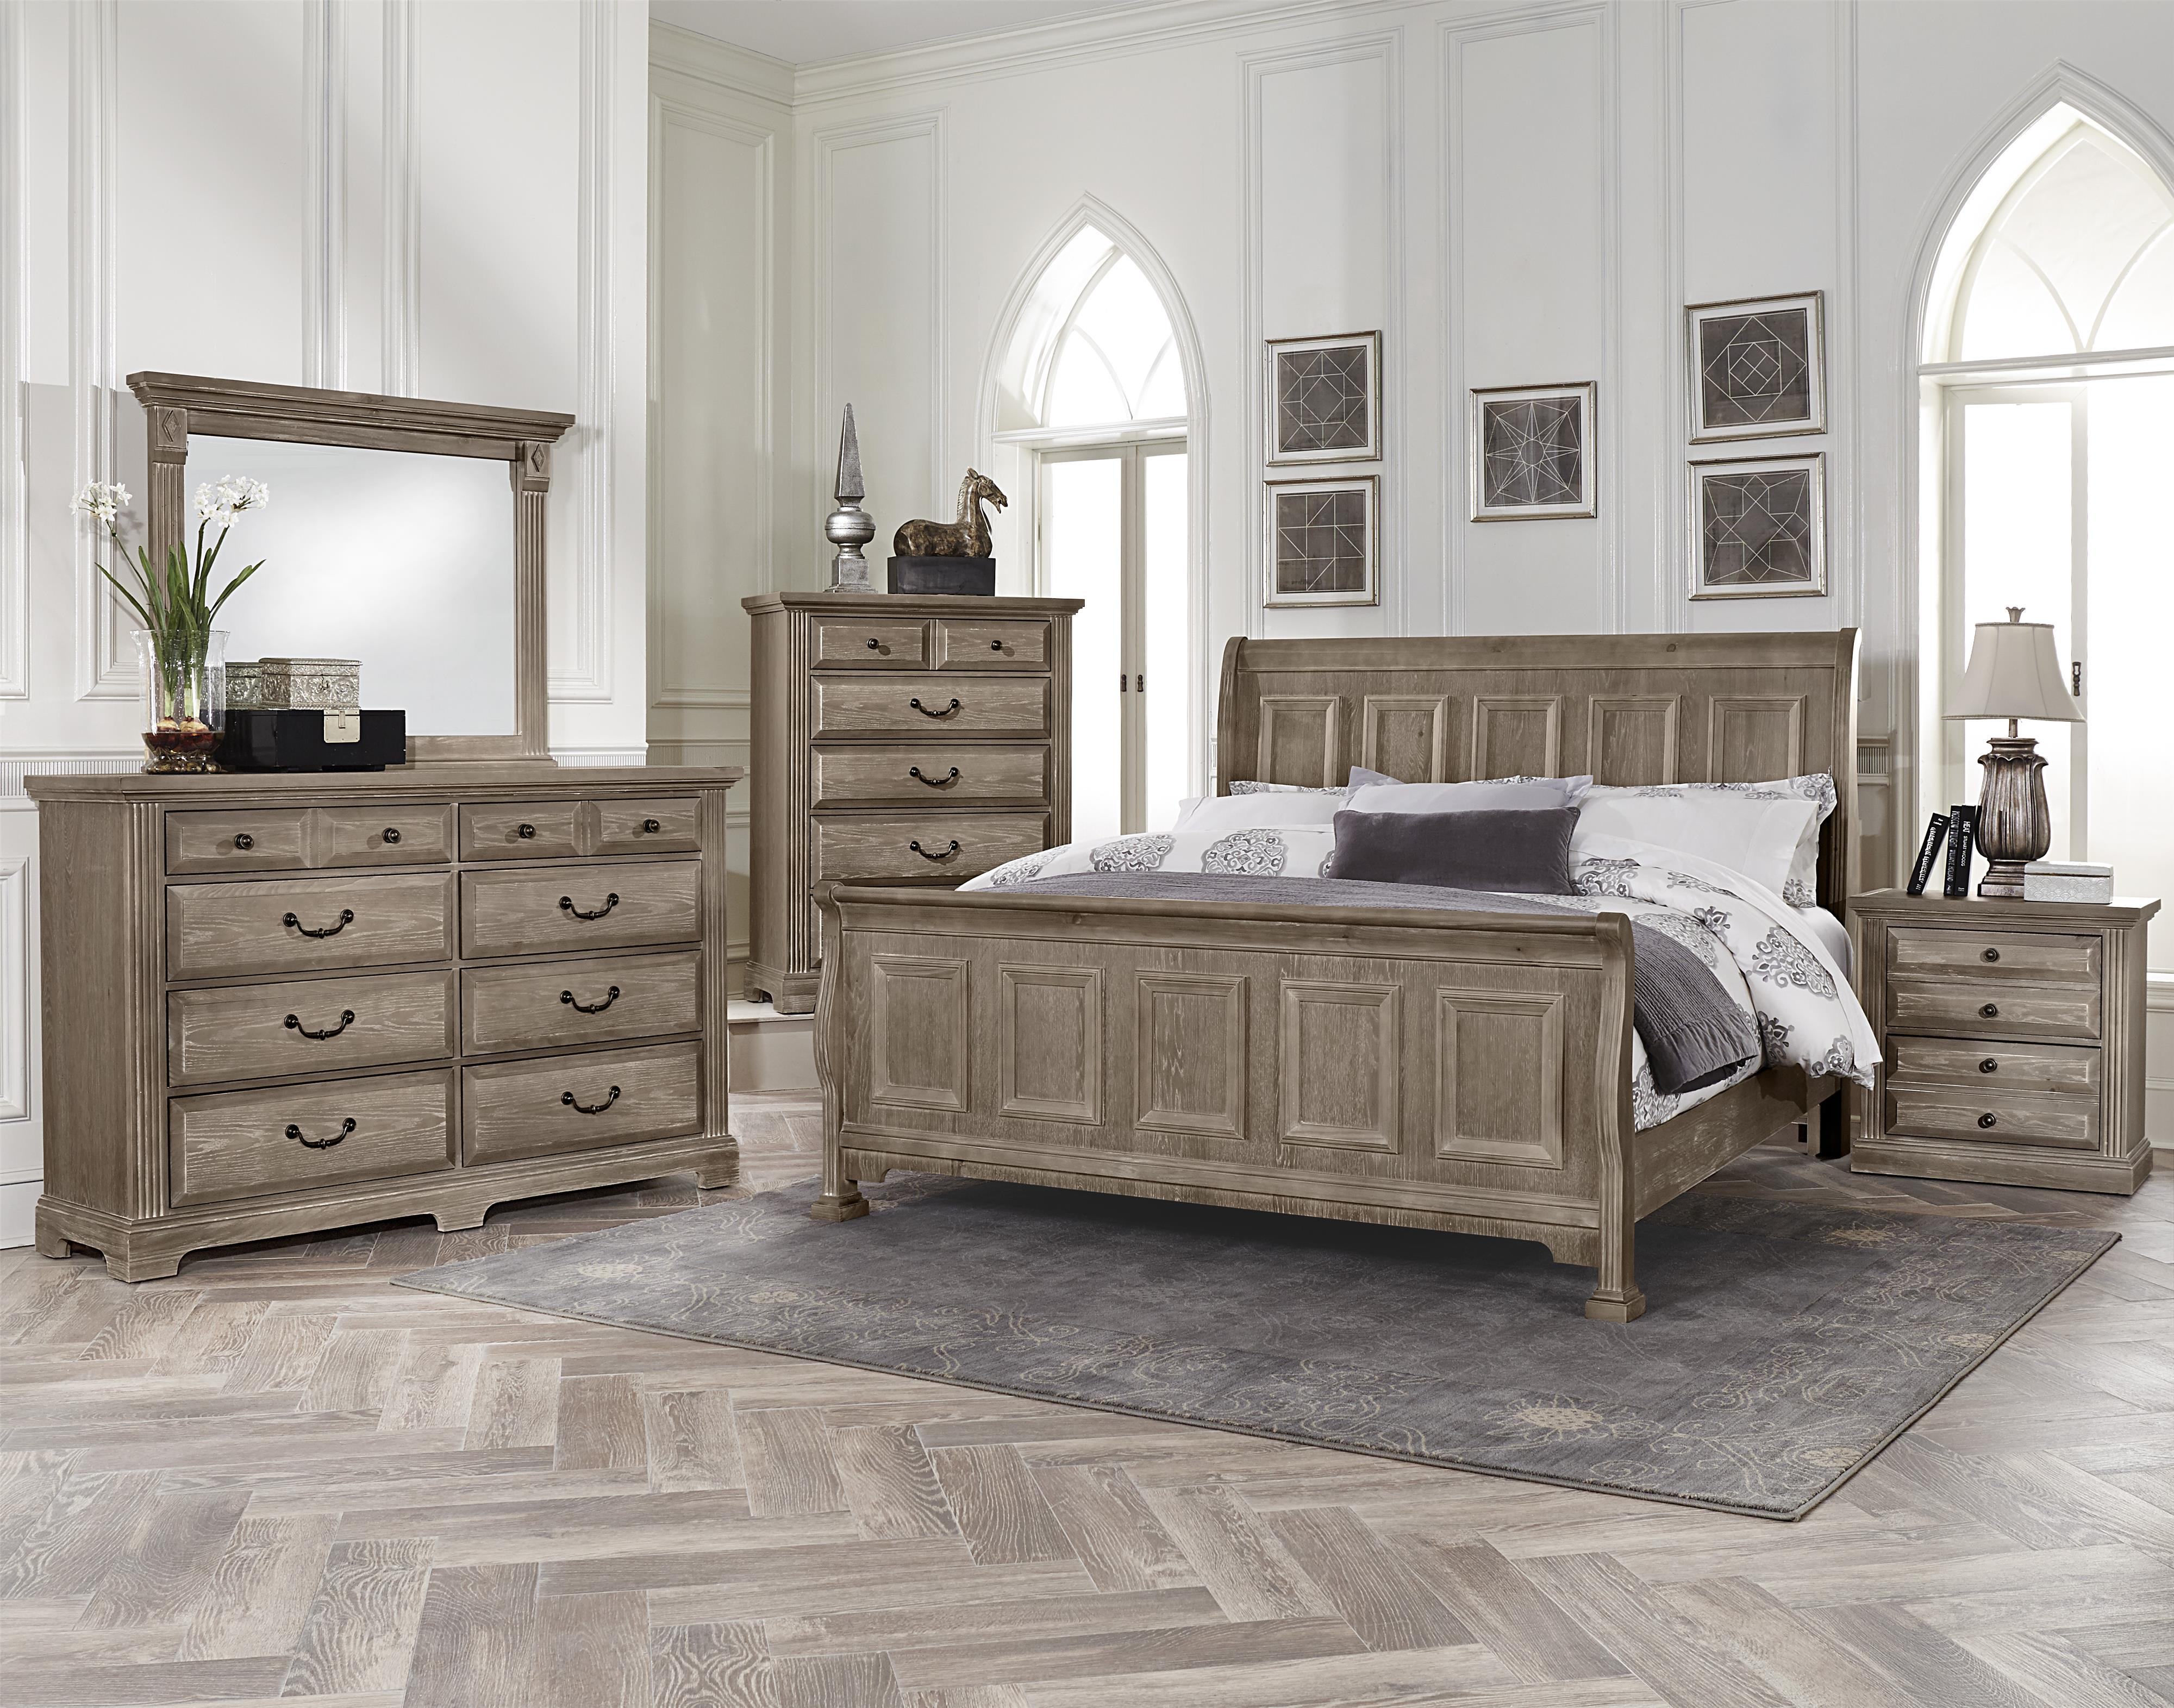 Phenomenal Woodlands King Bedroom Group By Vaughan Bassett At Rooms For Less Interior Design Ideas Tzicisoteloinfo